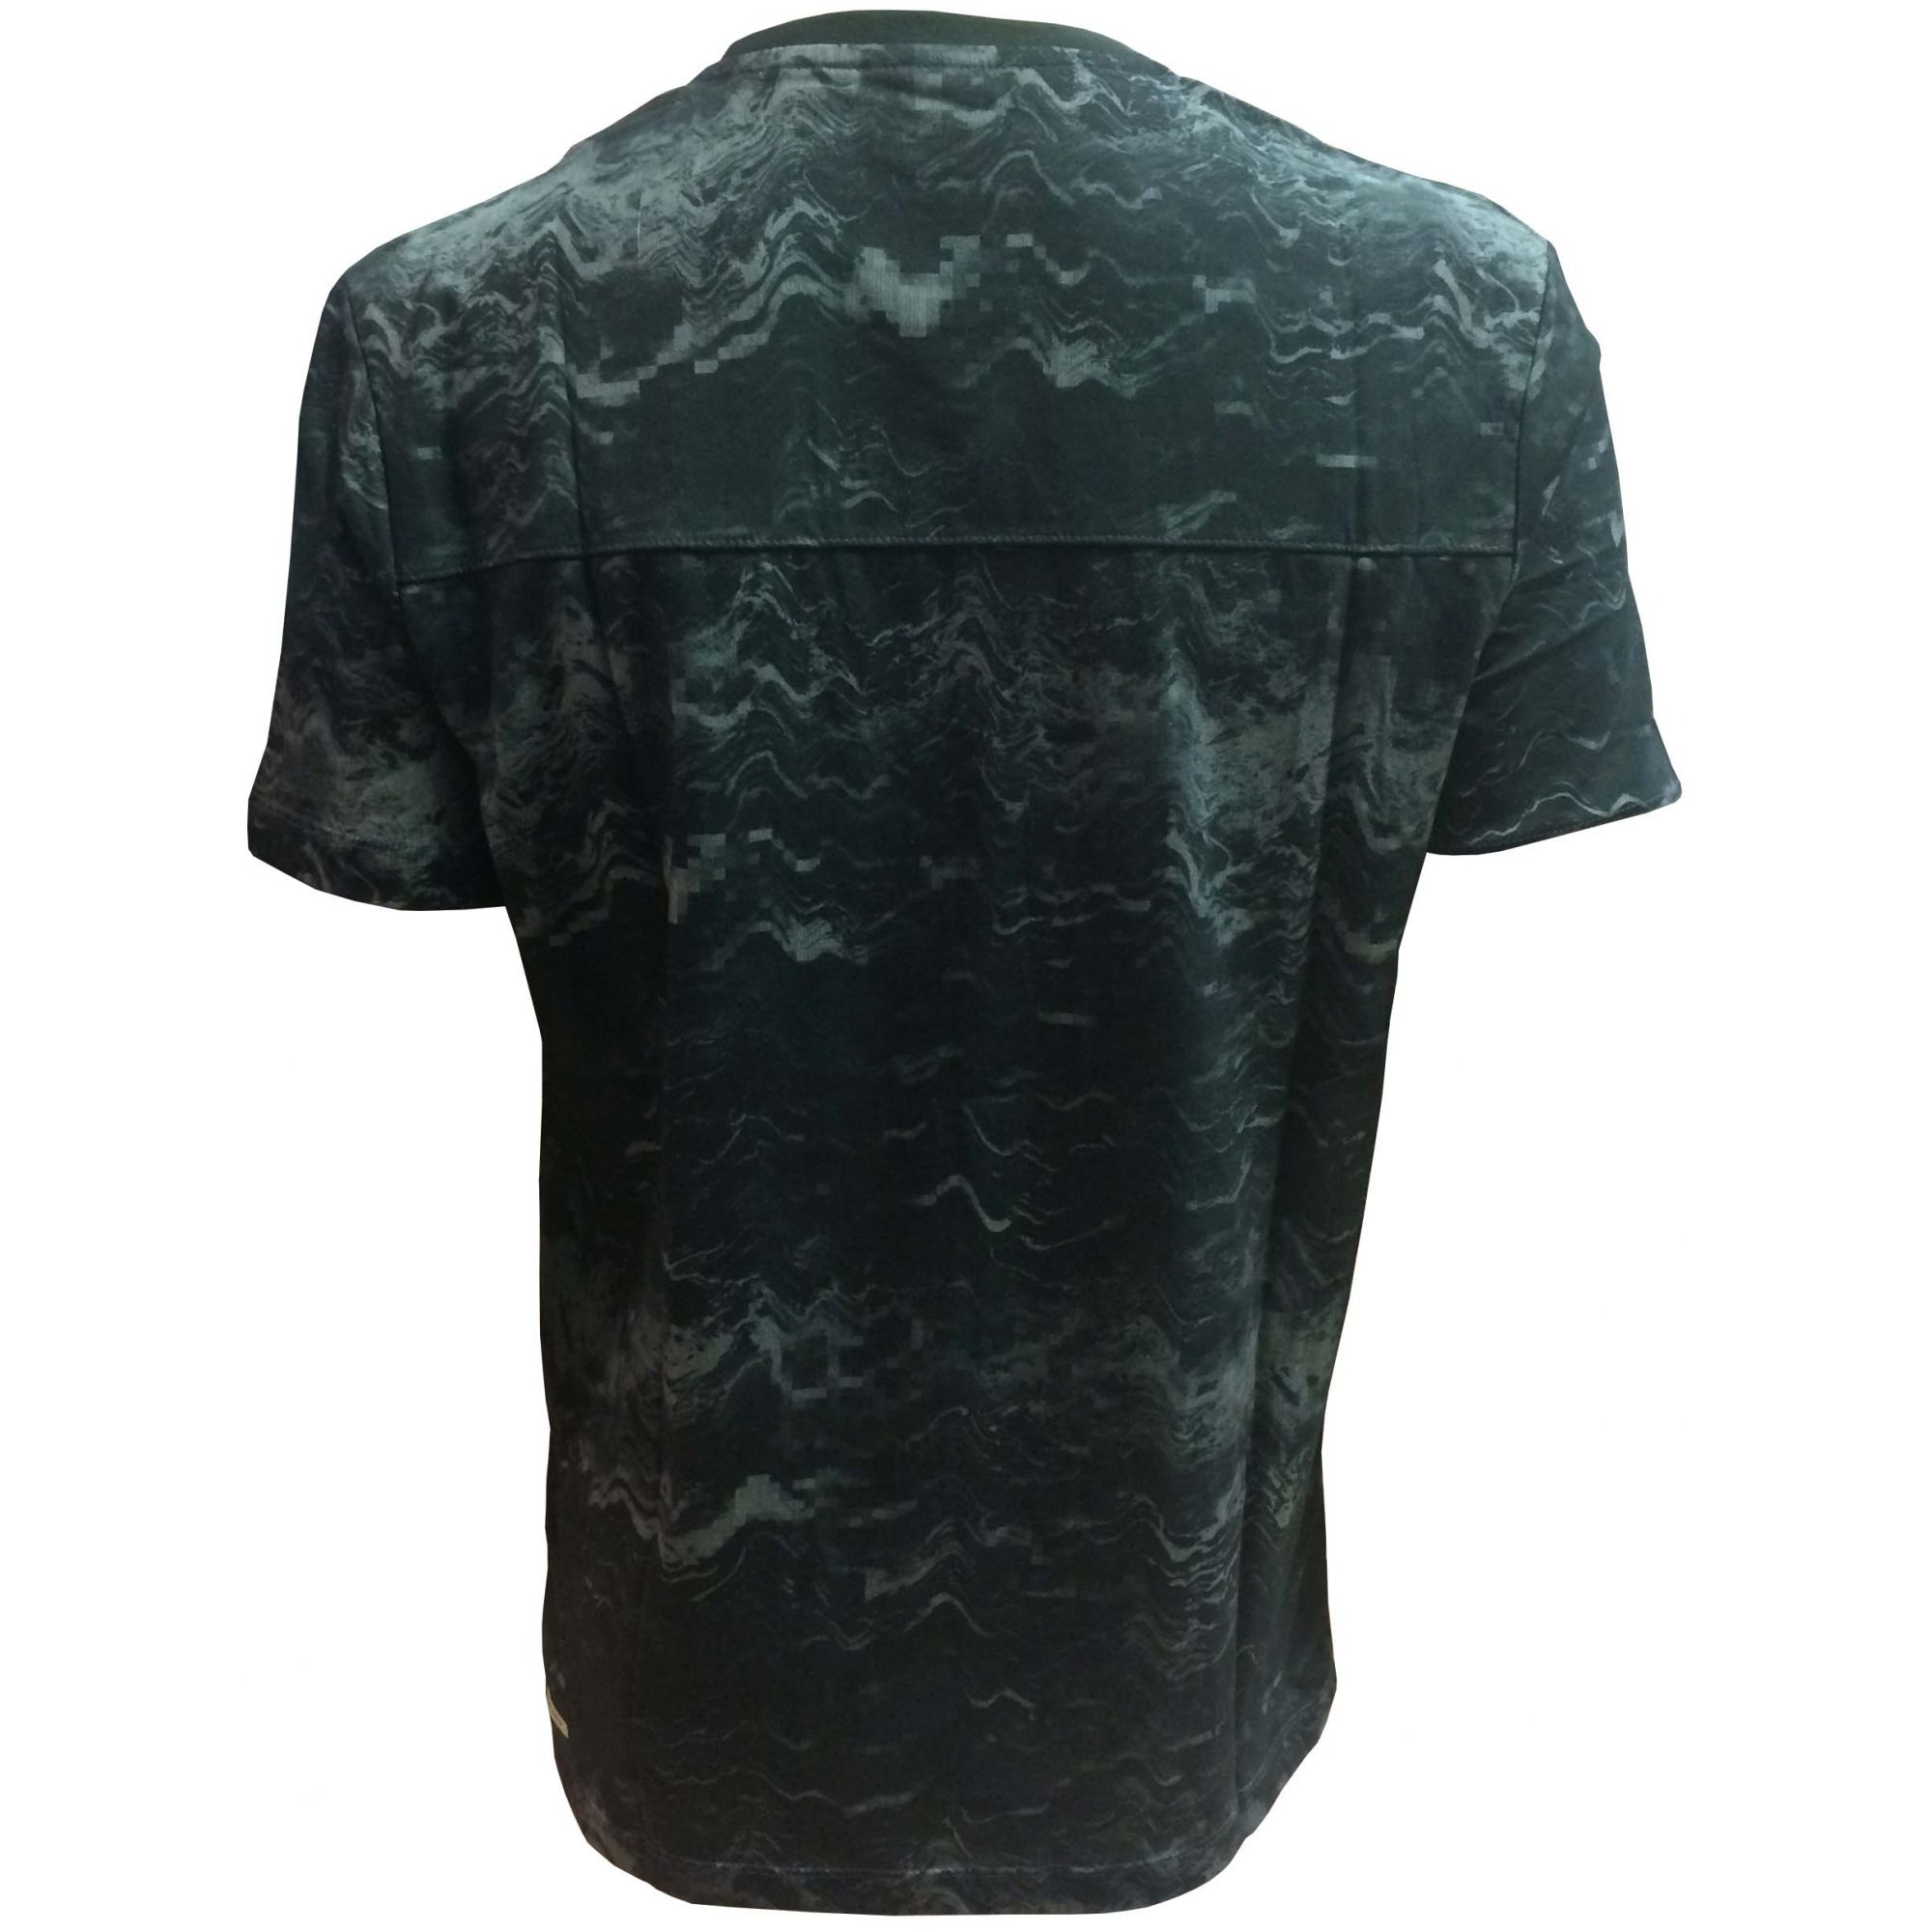 Camiseta Mcd Full Mar Masculina